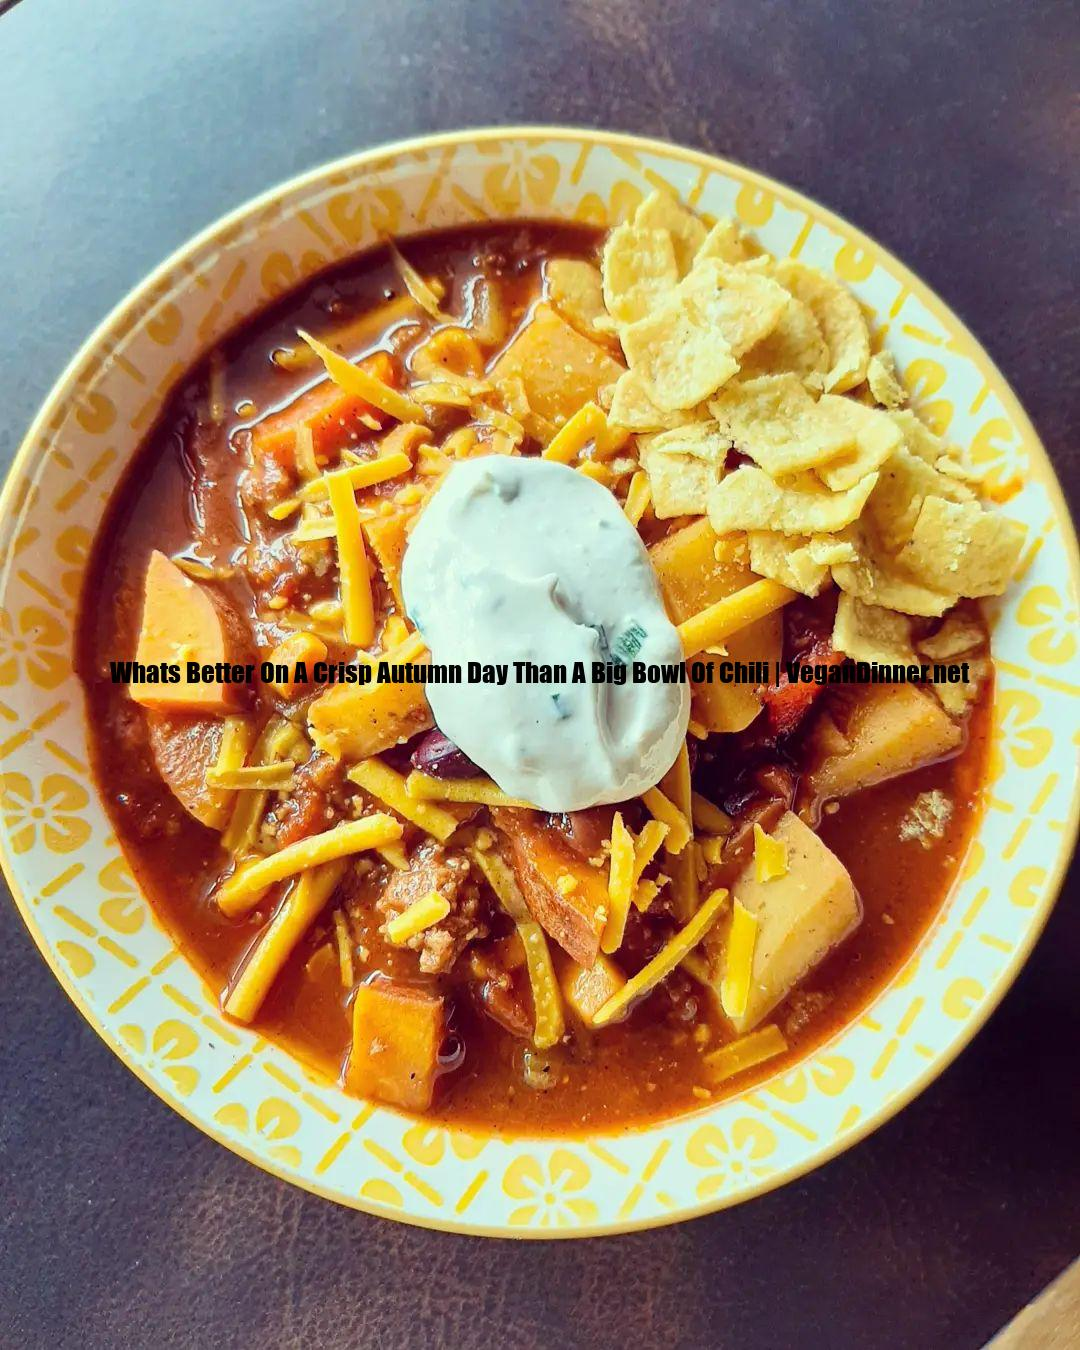 whats better on a crisp autumn day than a big bowl of chili multip img efd